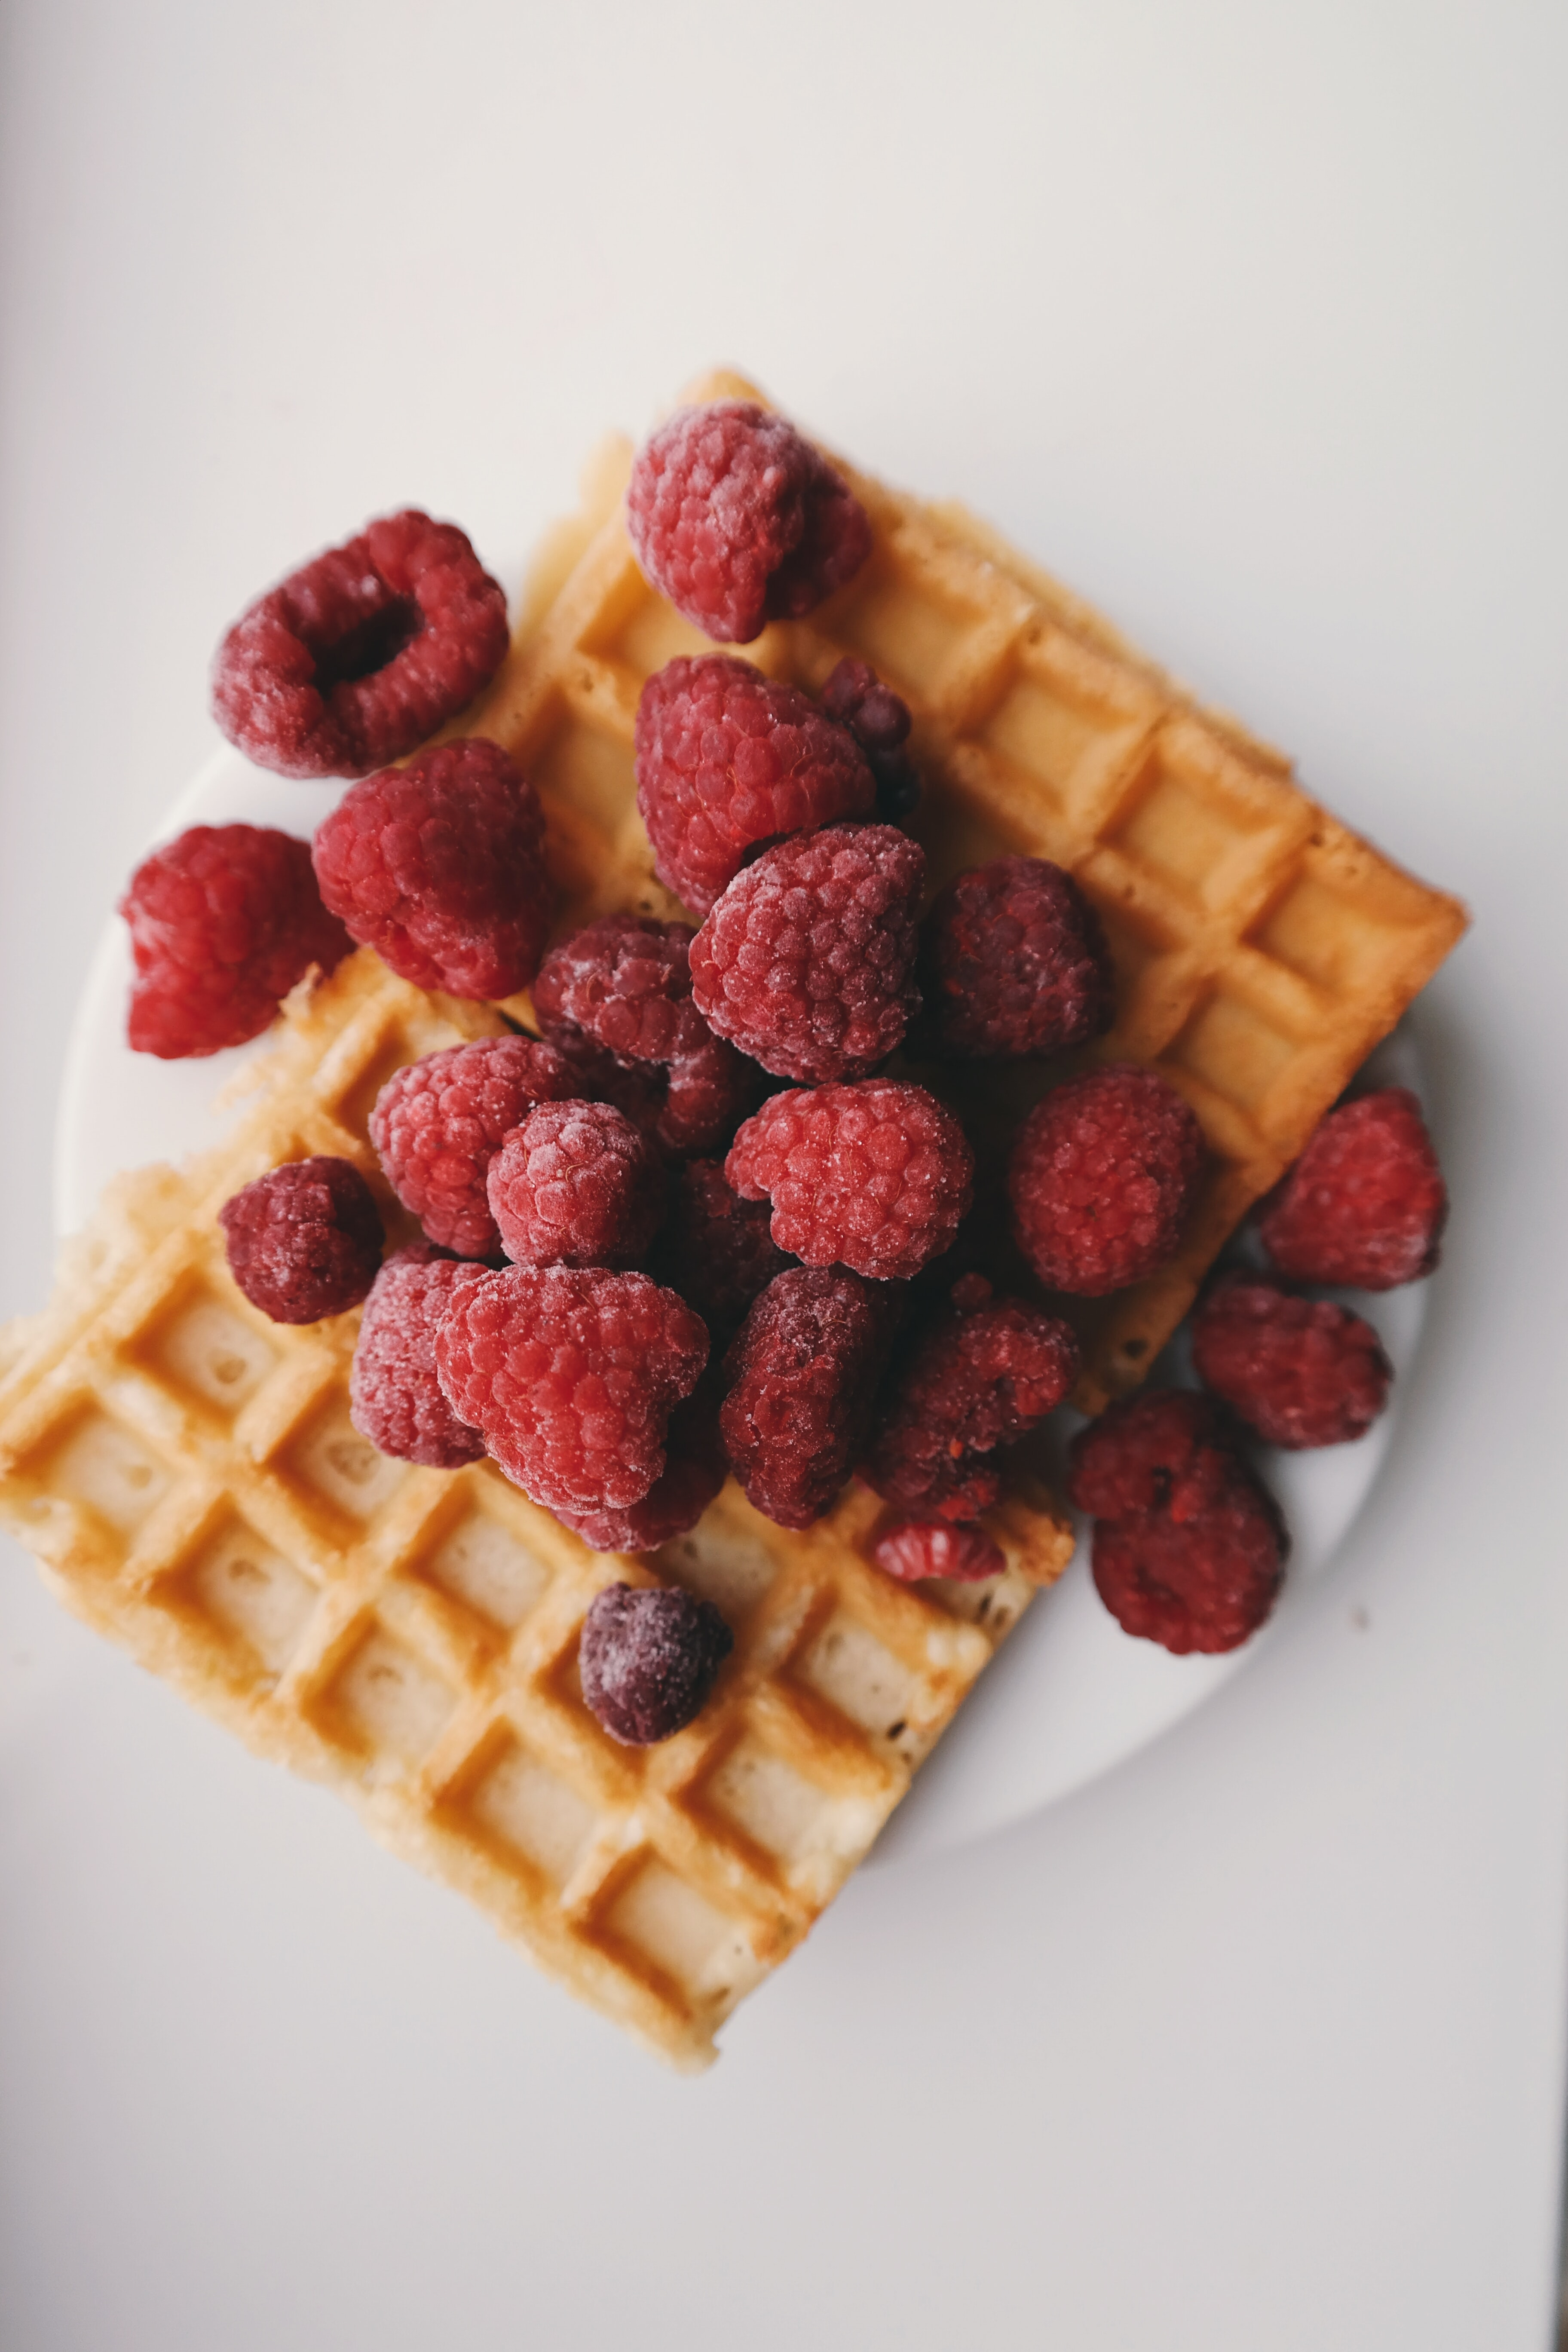 Raspberries on top of a rectangle shaped waffle.